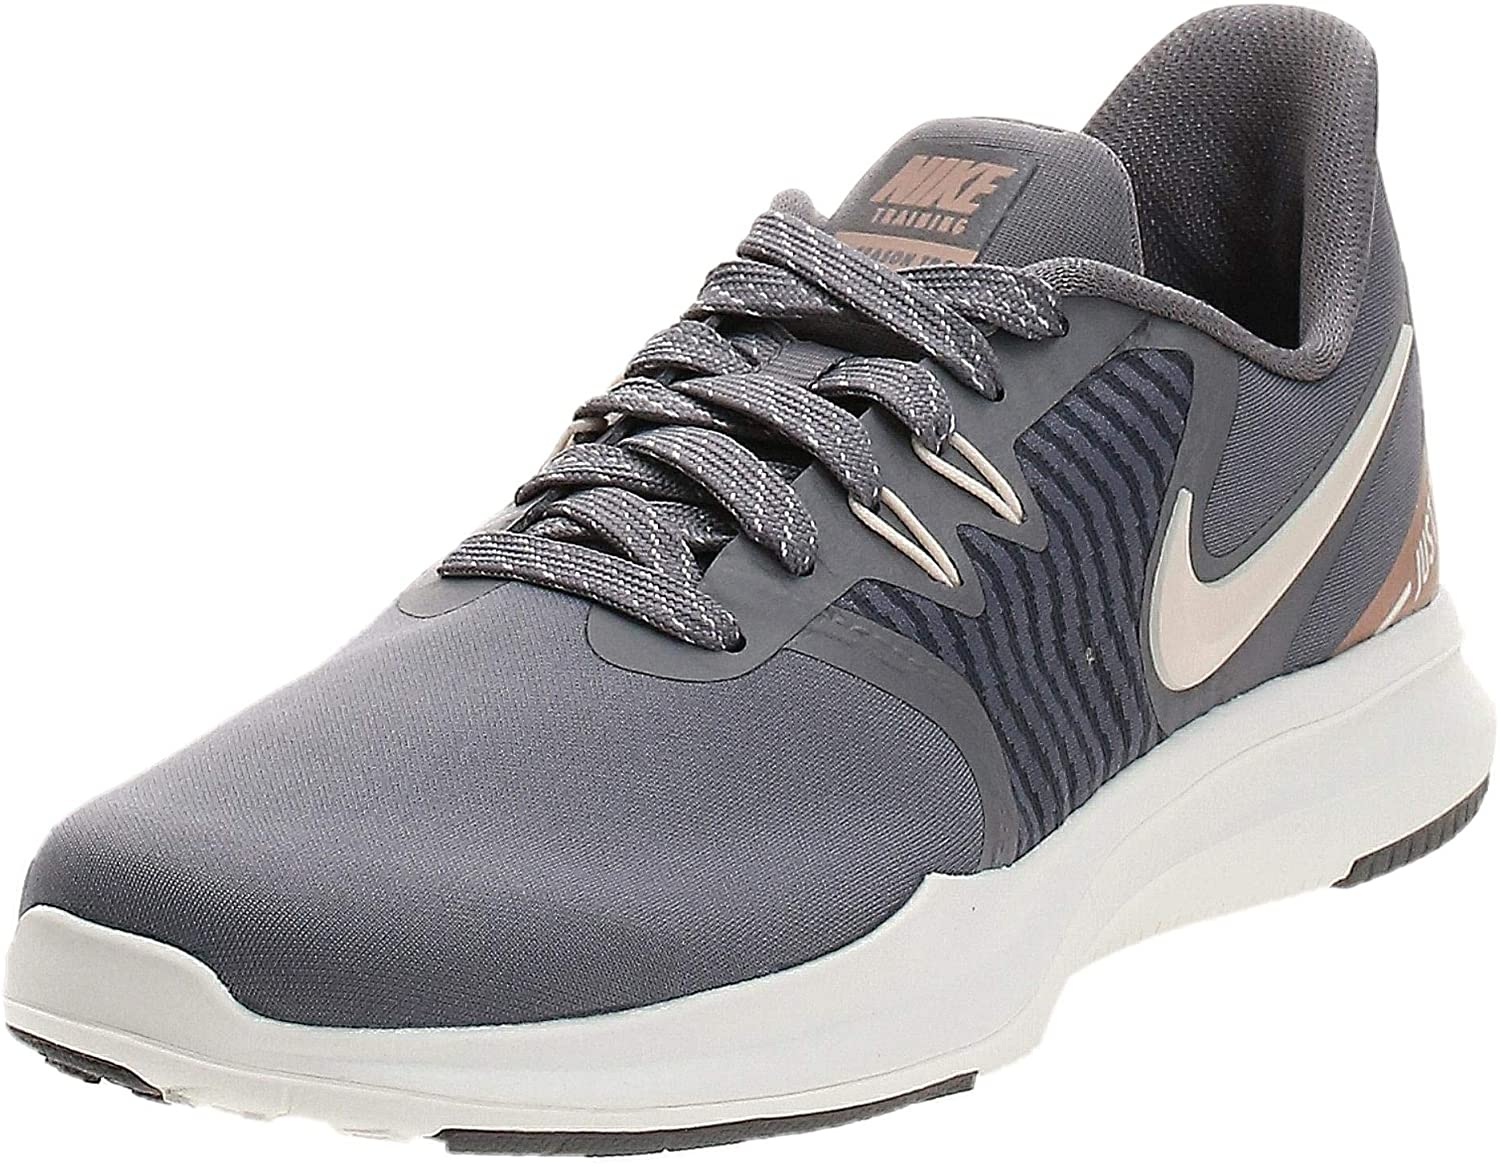 Nippon regular agency Nike Womens in Season Tr 8 Aa7774 Trainers AMP Running Sneakers Recommended